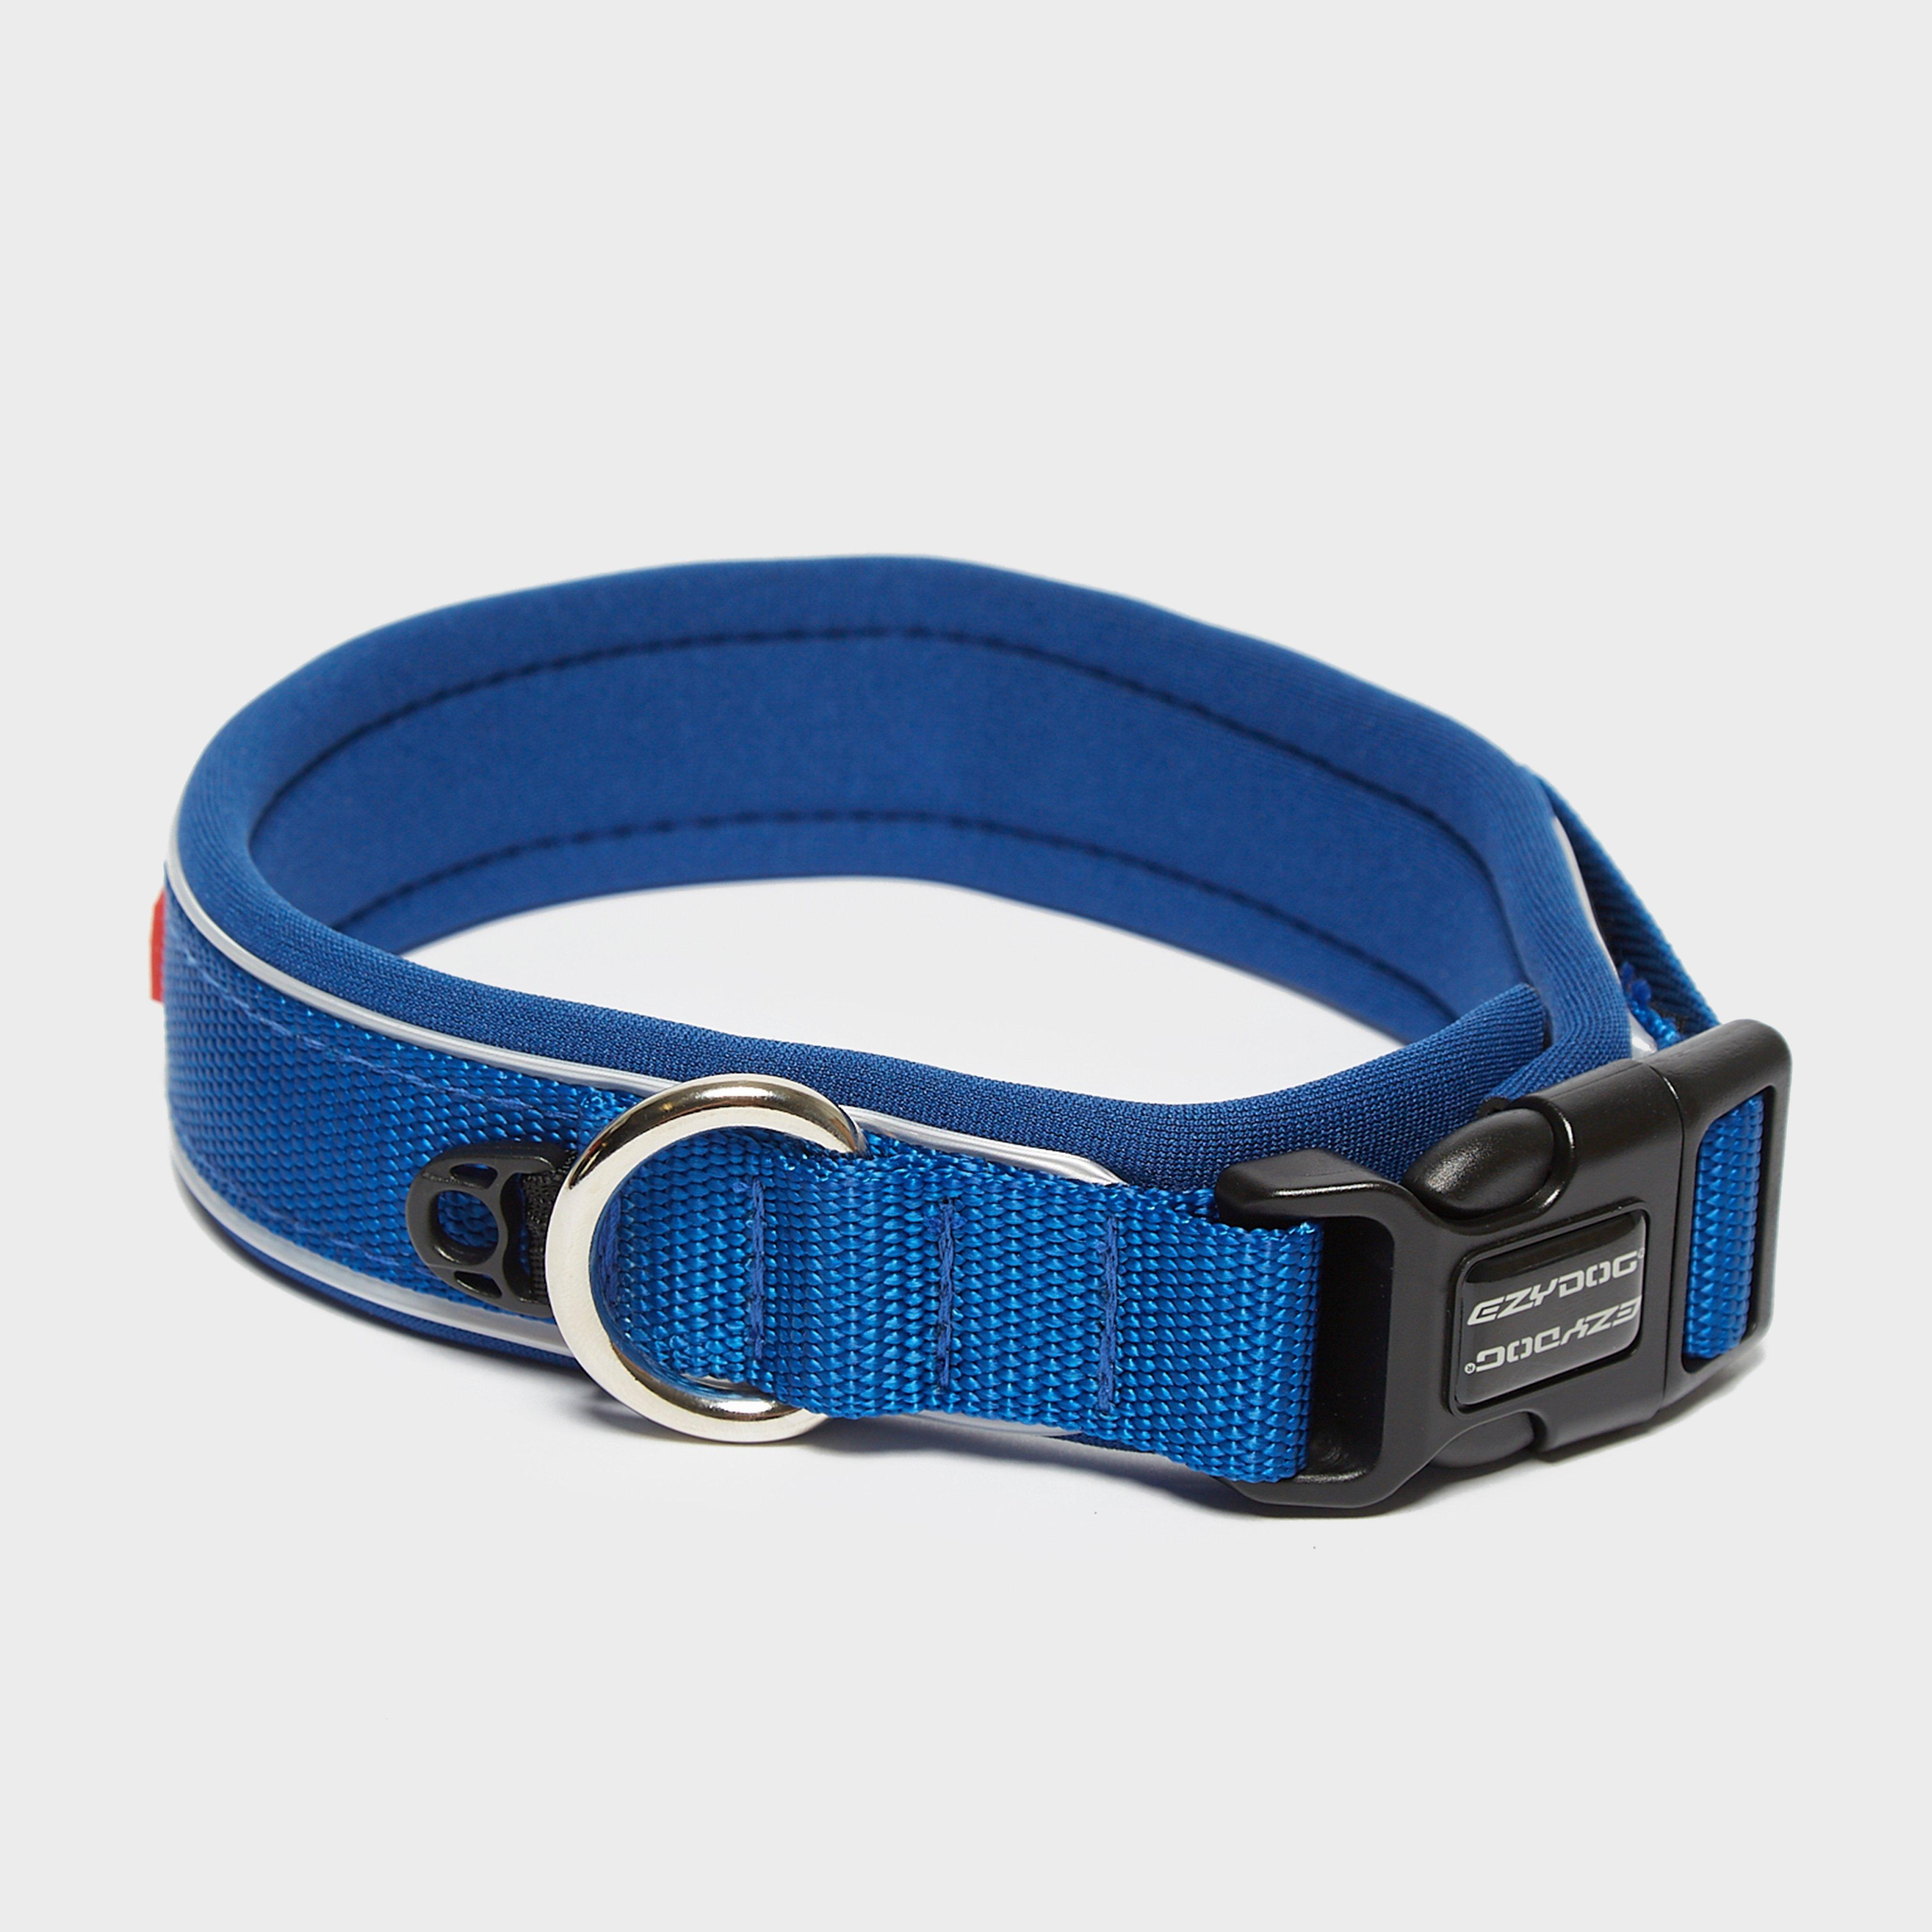 Image of Ezy-Dog Classic Neo Collar (Large) - Blue/Mbl, Blue/MBL